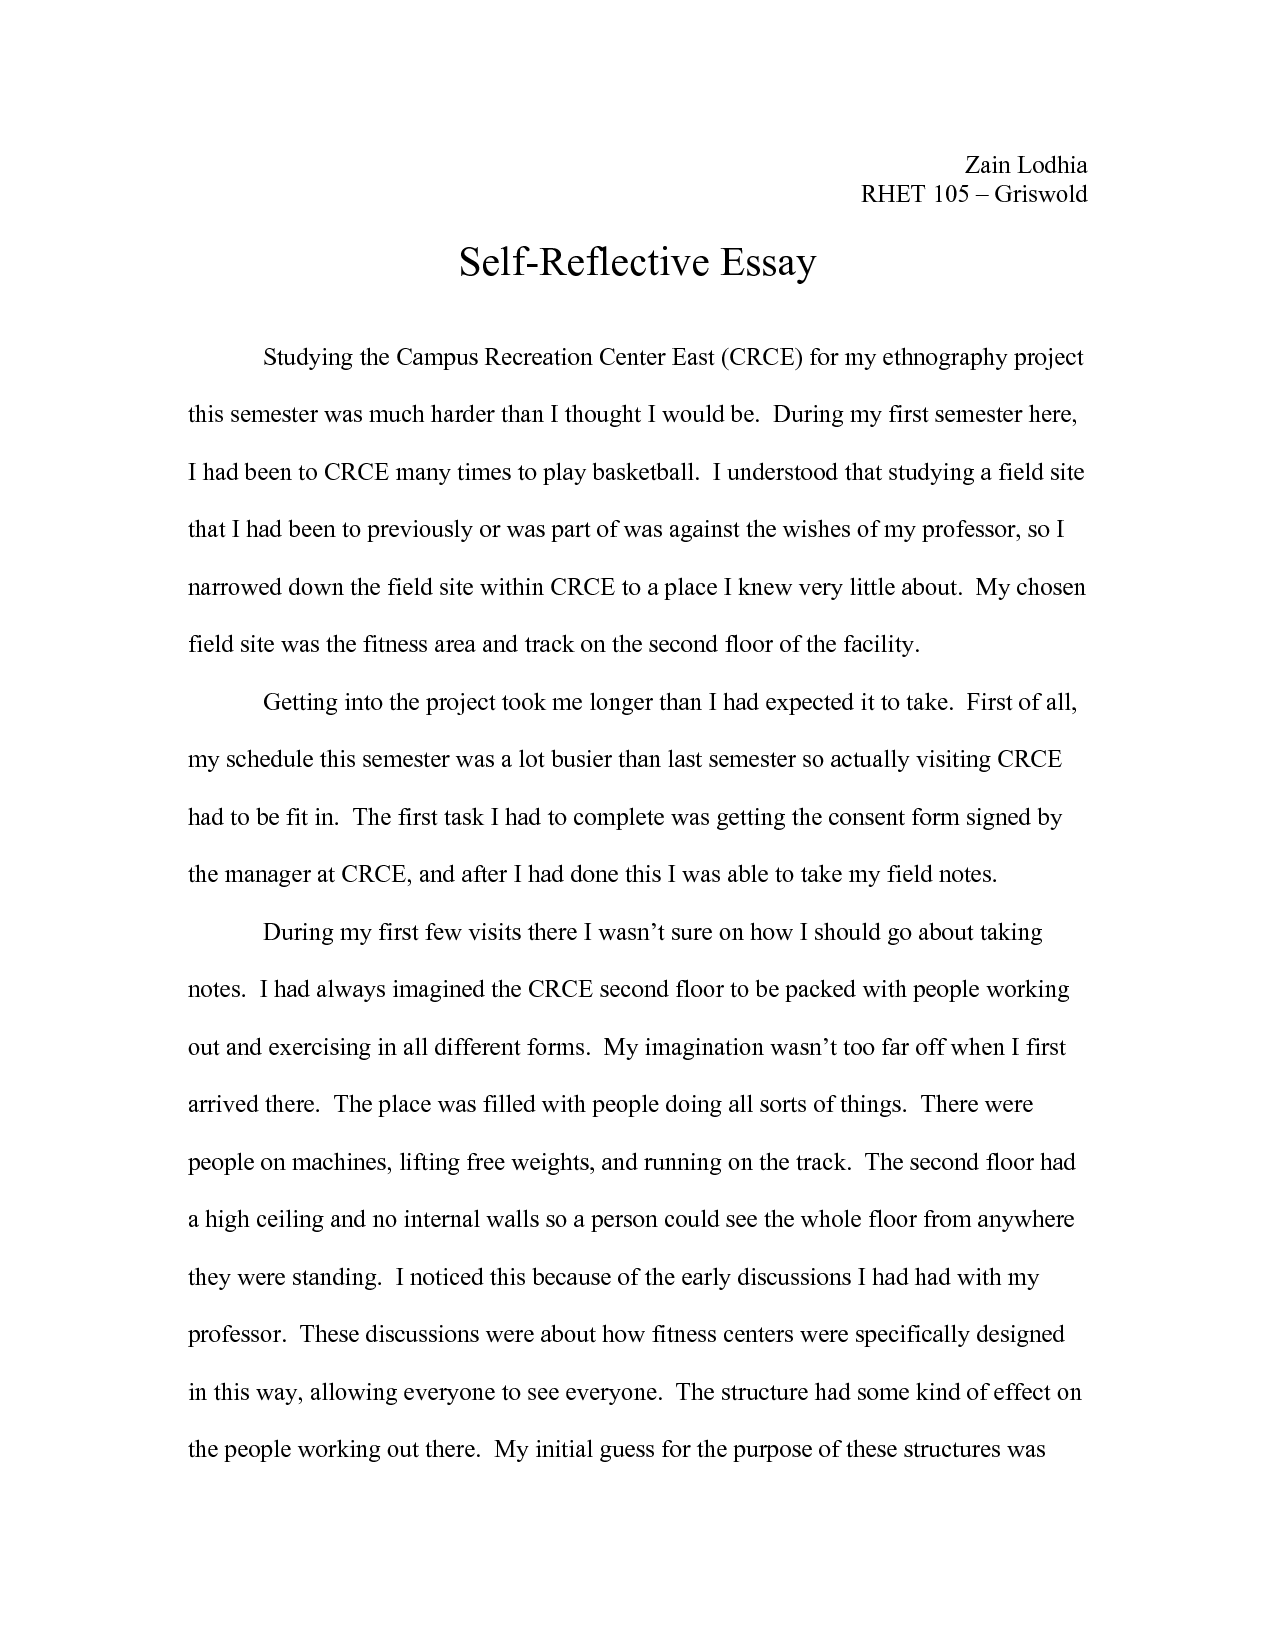 007 Essay Example Qal0pwnf46 Good Fascinating Examples University Explanatory For Middle School Introduction Full